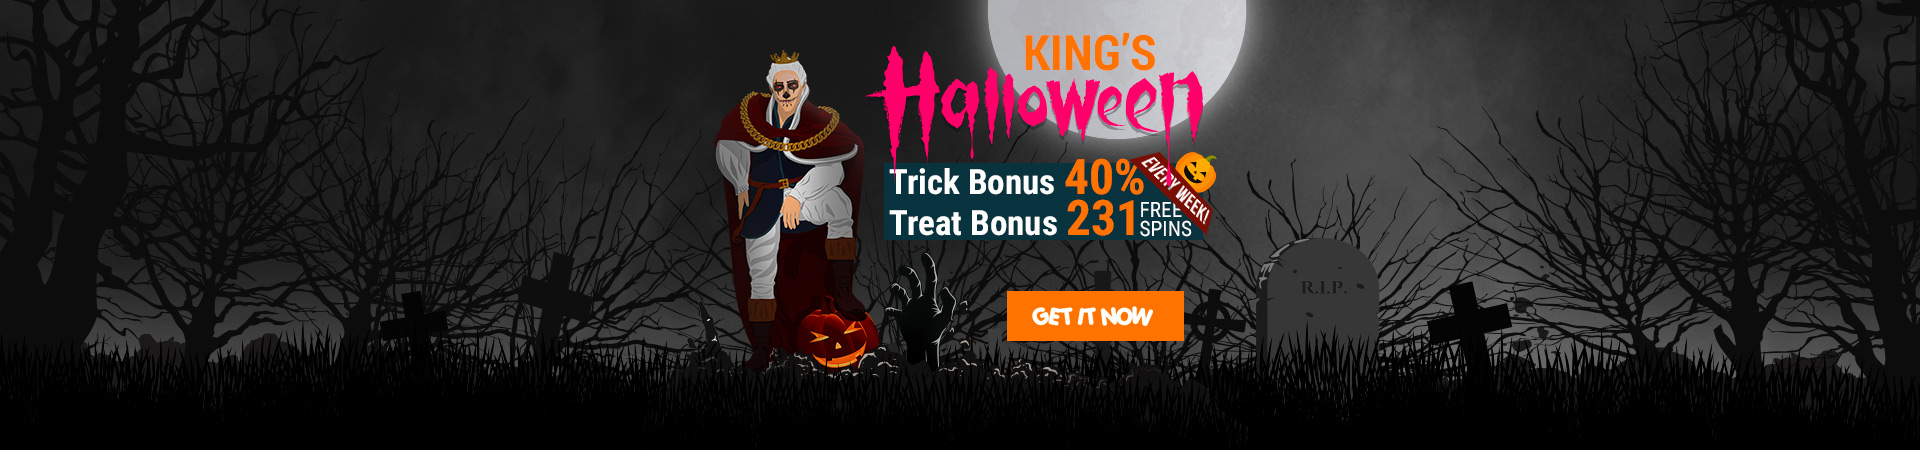 2020 10 King Billy English King's Halloween 1920x450